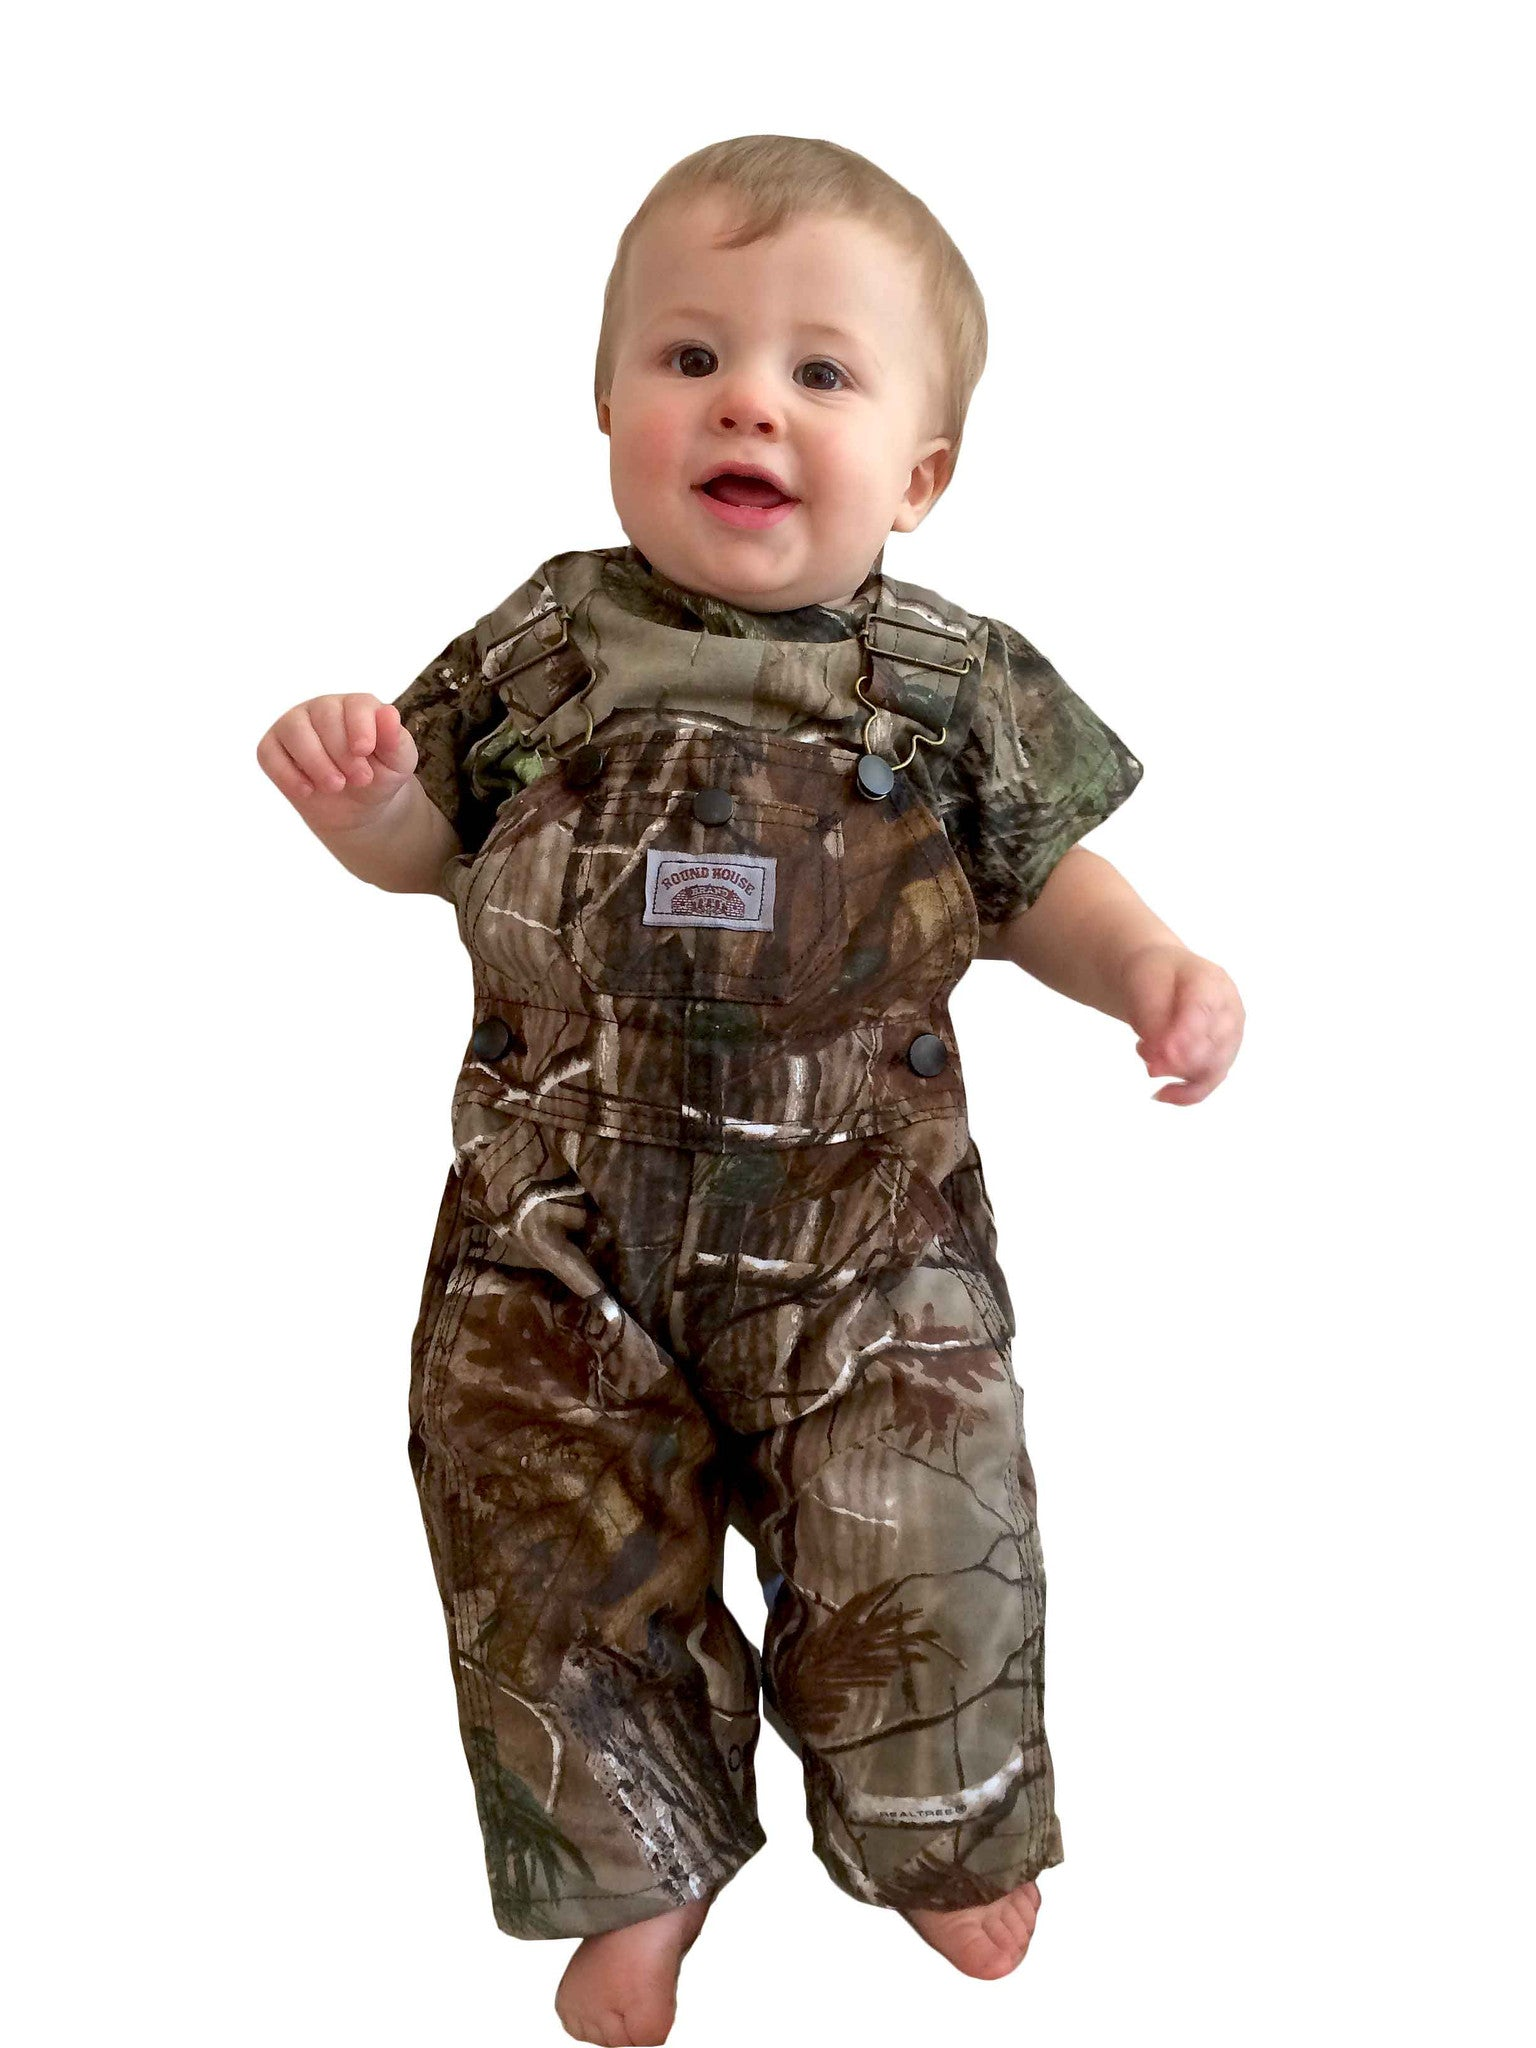 #751 Realtree Kids BIB OVERALL Made in USA